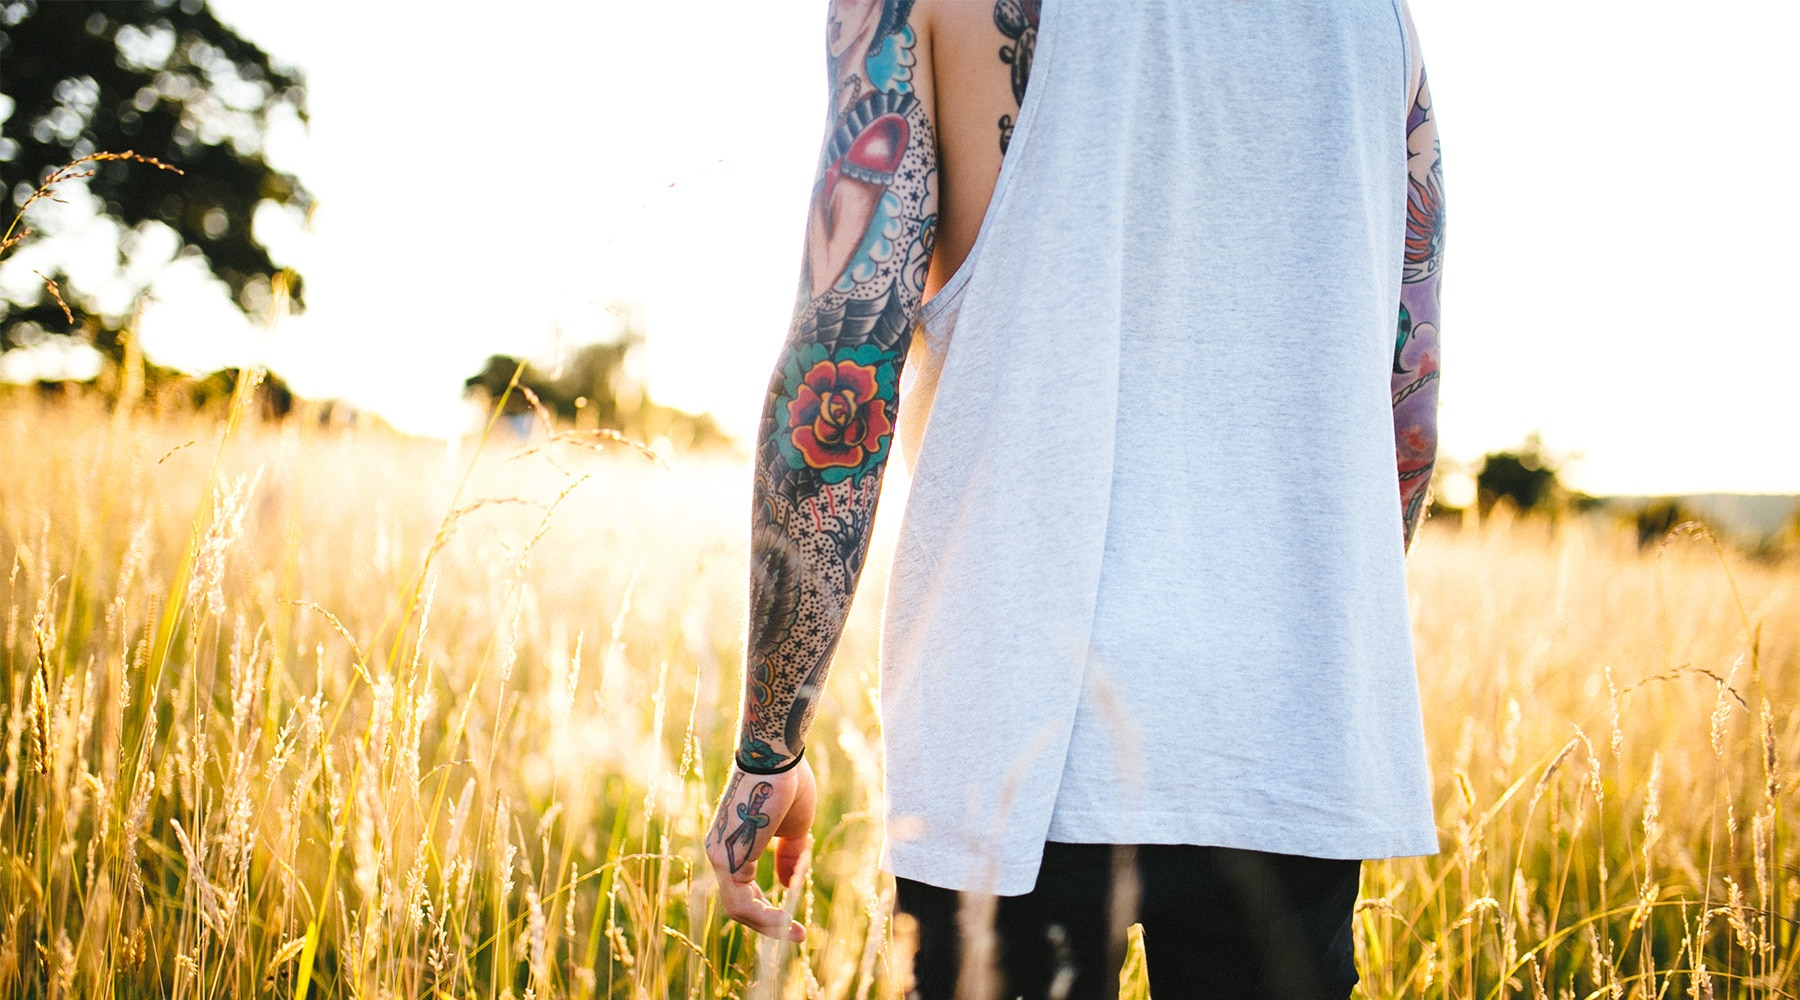 A person with full sleeve tattoos walks through a sun-drenched field.